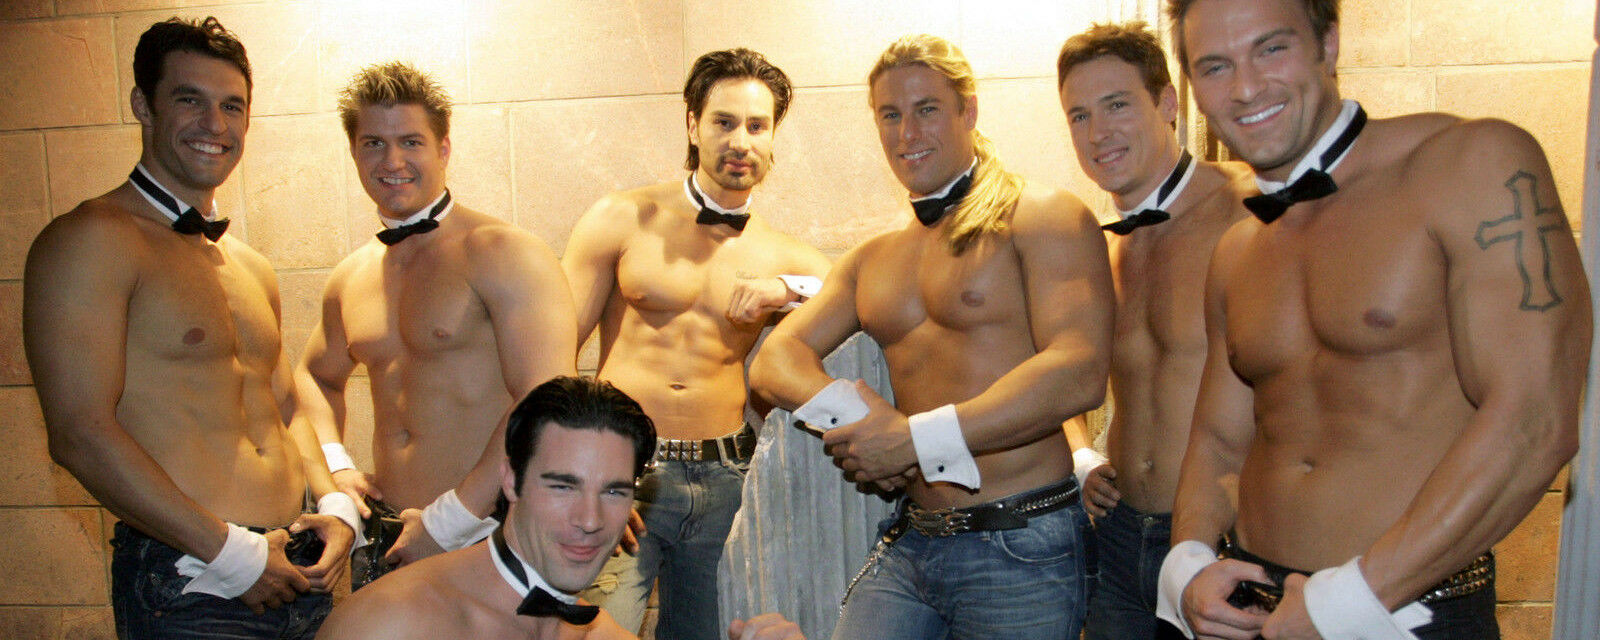 PARKING PASSES ONLY Chippendales Tour